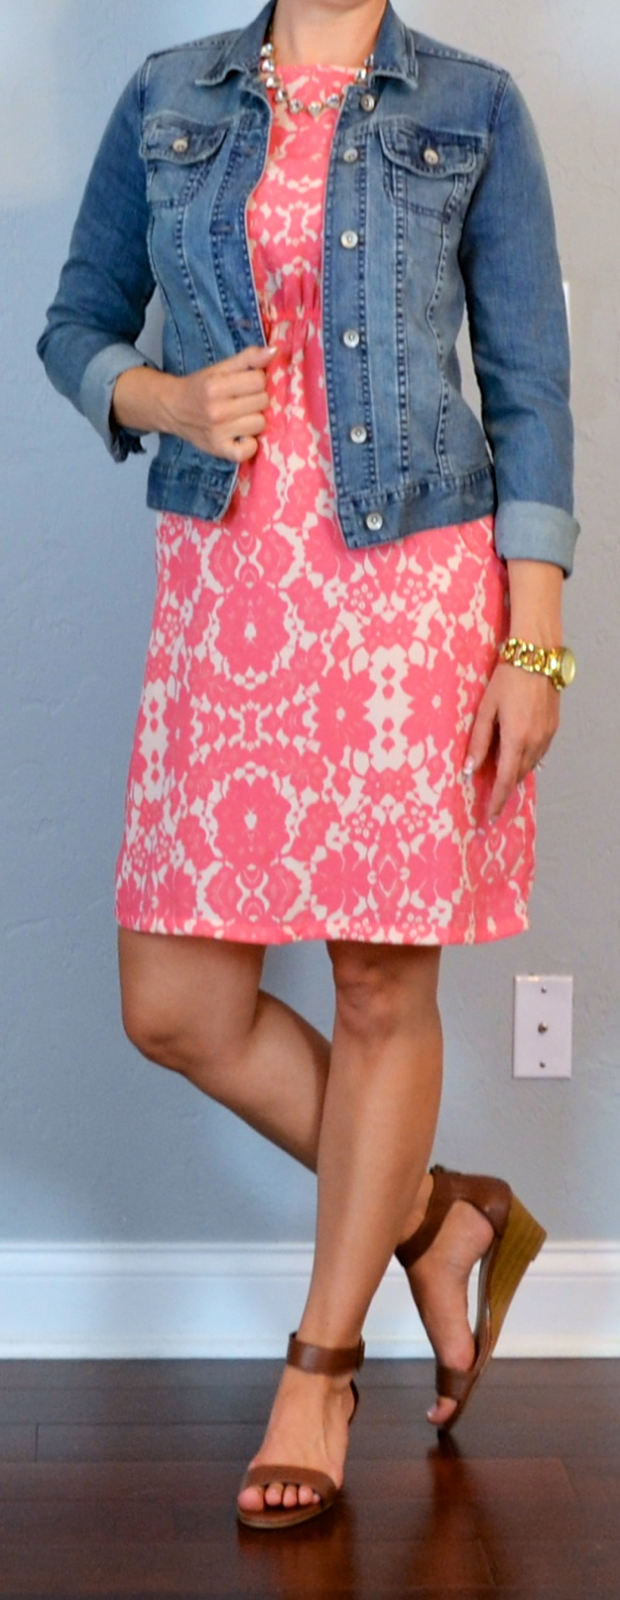 Outfit post peach/pink floral dress jean jacket brown wedge sandals | Outfit Posts